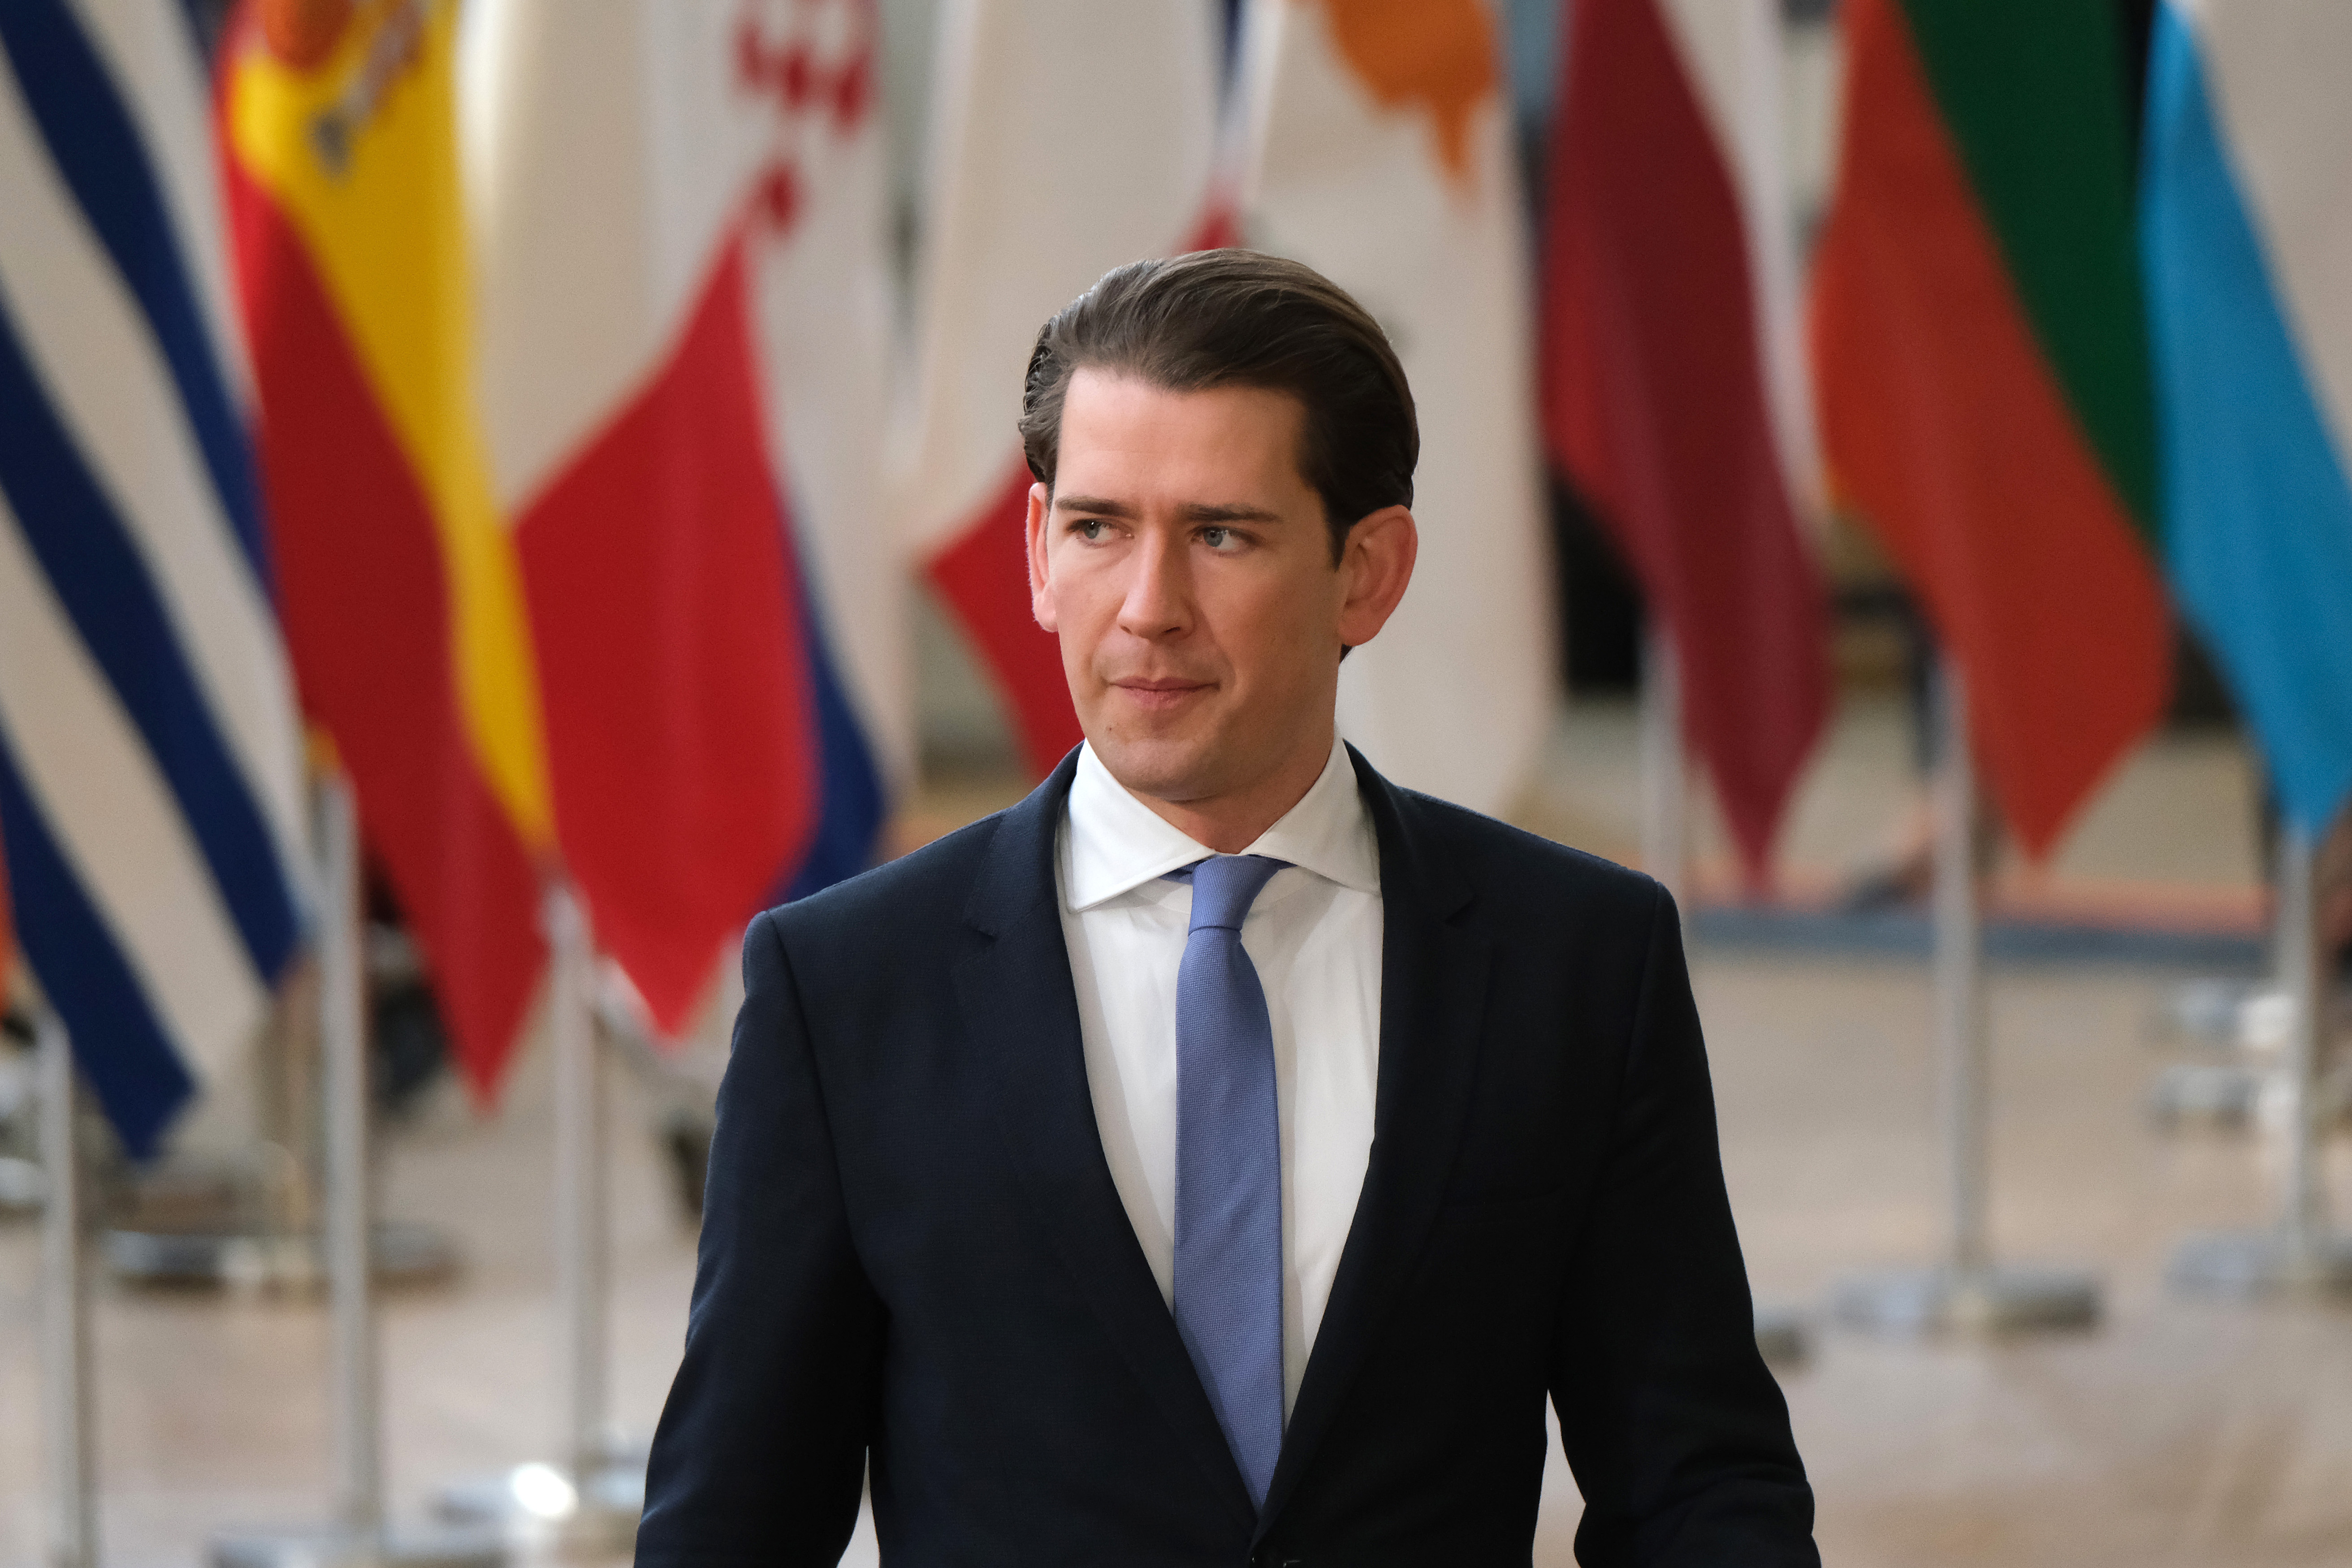 BRUSSELS, BELGIUM - MARCH 22: Austrian Chancellor Sebastian Kurz attends a celebration to mark the 25th anniversary of the European Economic Area on the second day of an EU summit on March 22, 2019 in Brussels, Belgium. (Sean Gallup/Getty Images)